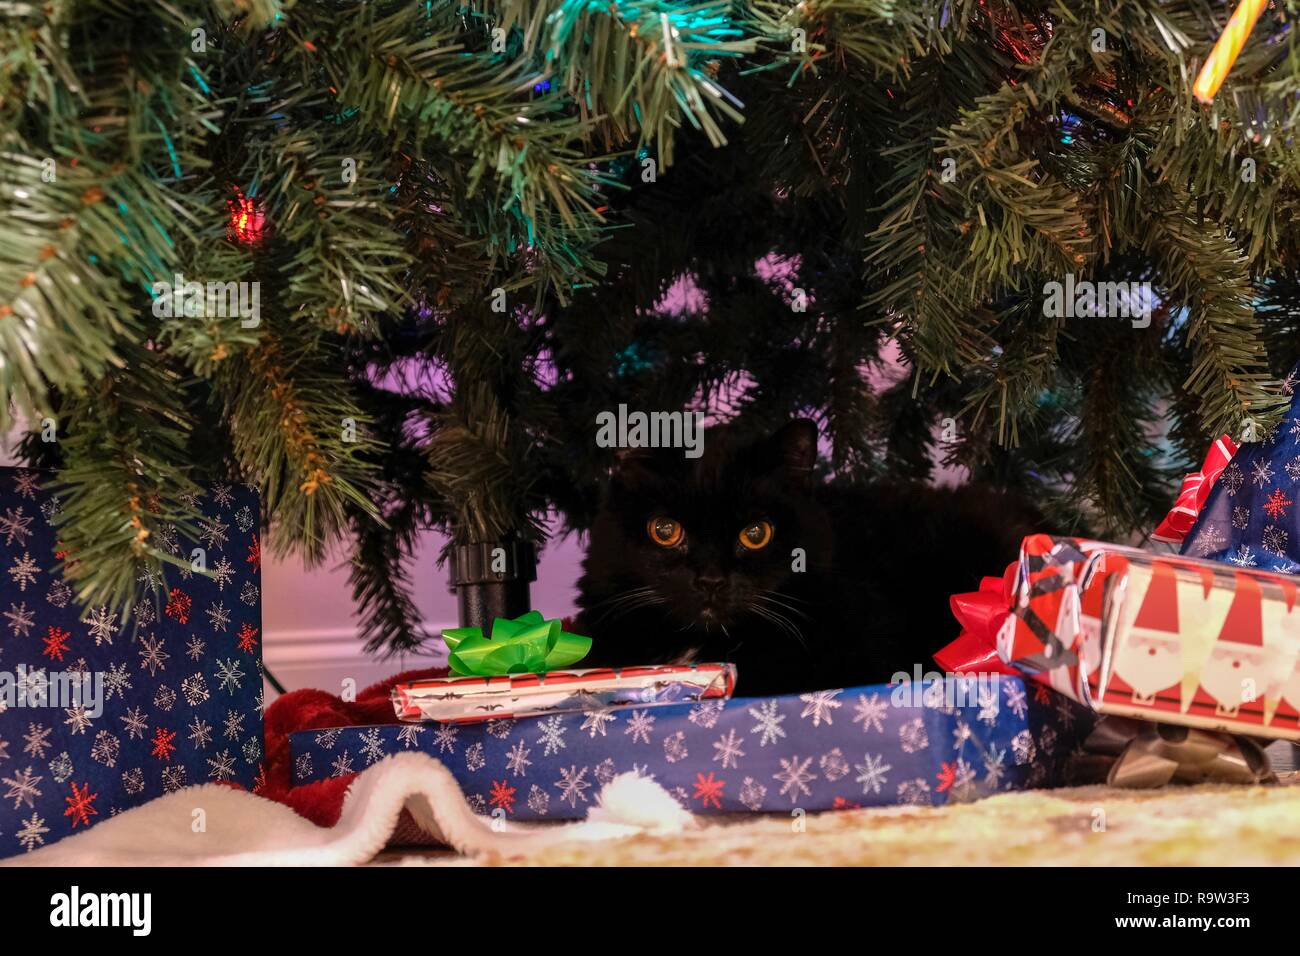 A black cat is crouched under the Christmas tree, cautiously watching from the shadows. - Stock Image